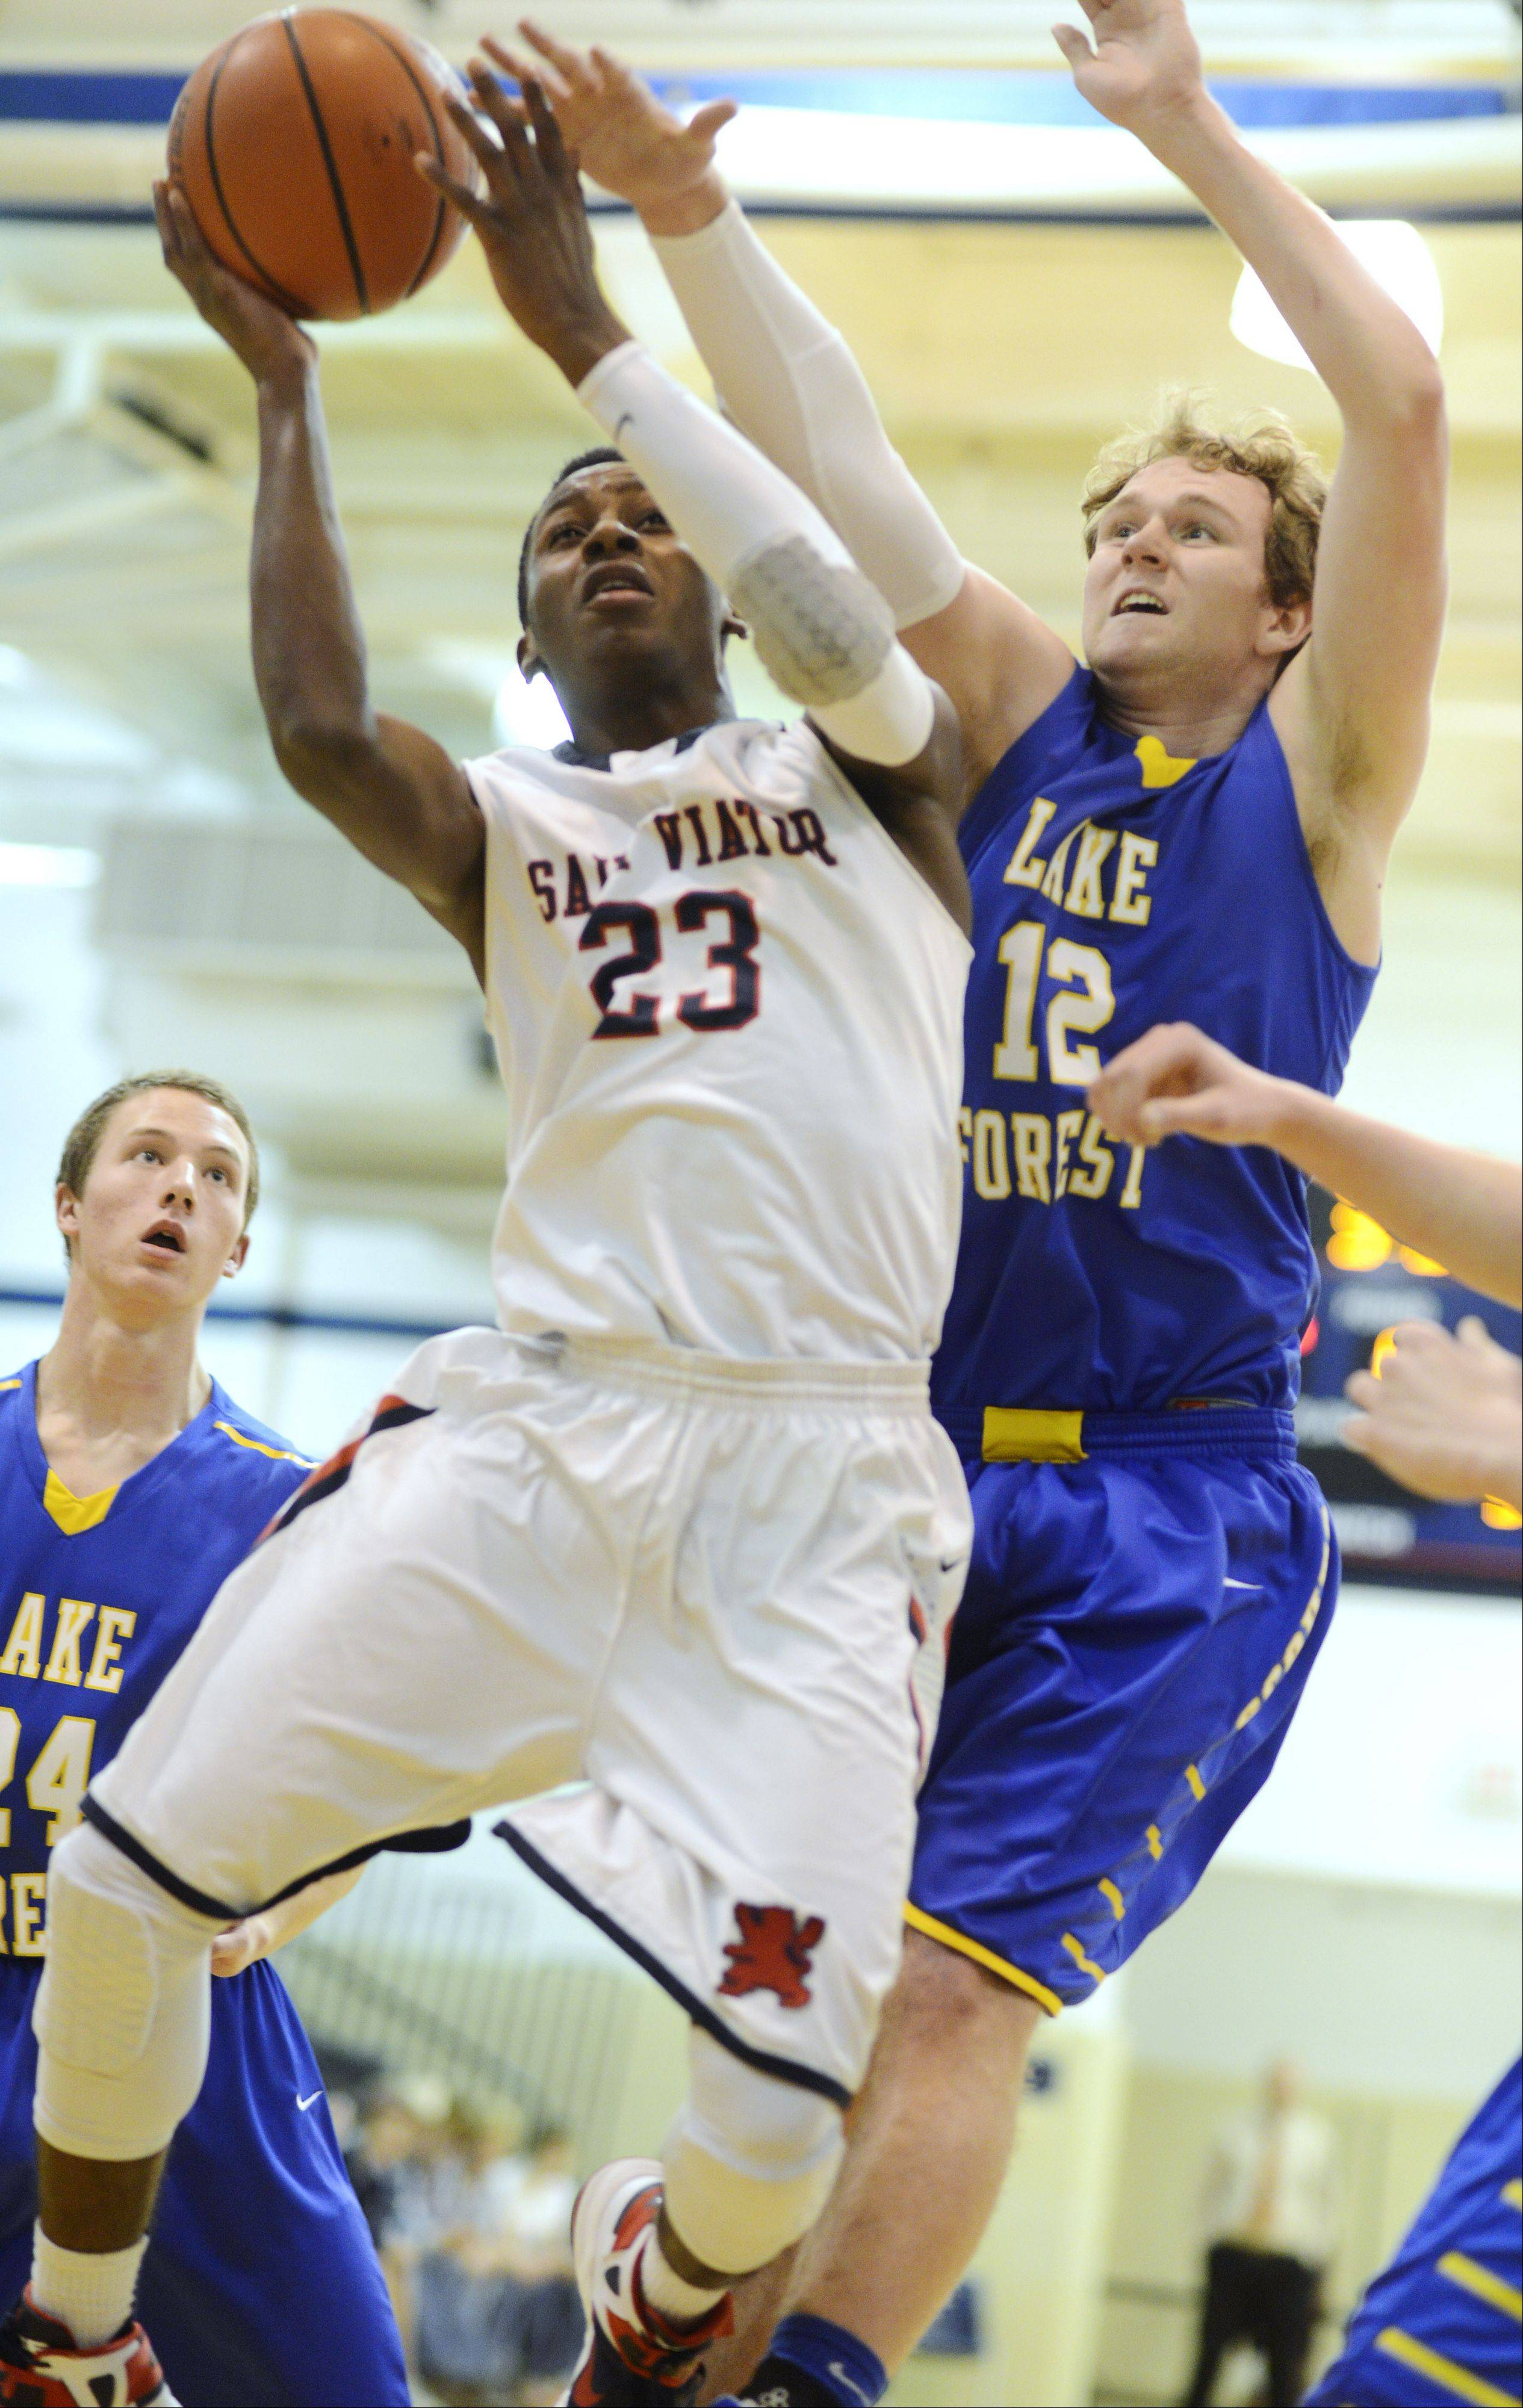 St. Viator's Ore Arogundade drives to the basket against Lake Forest's Evan Boudreaux during Tuesday's game.